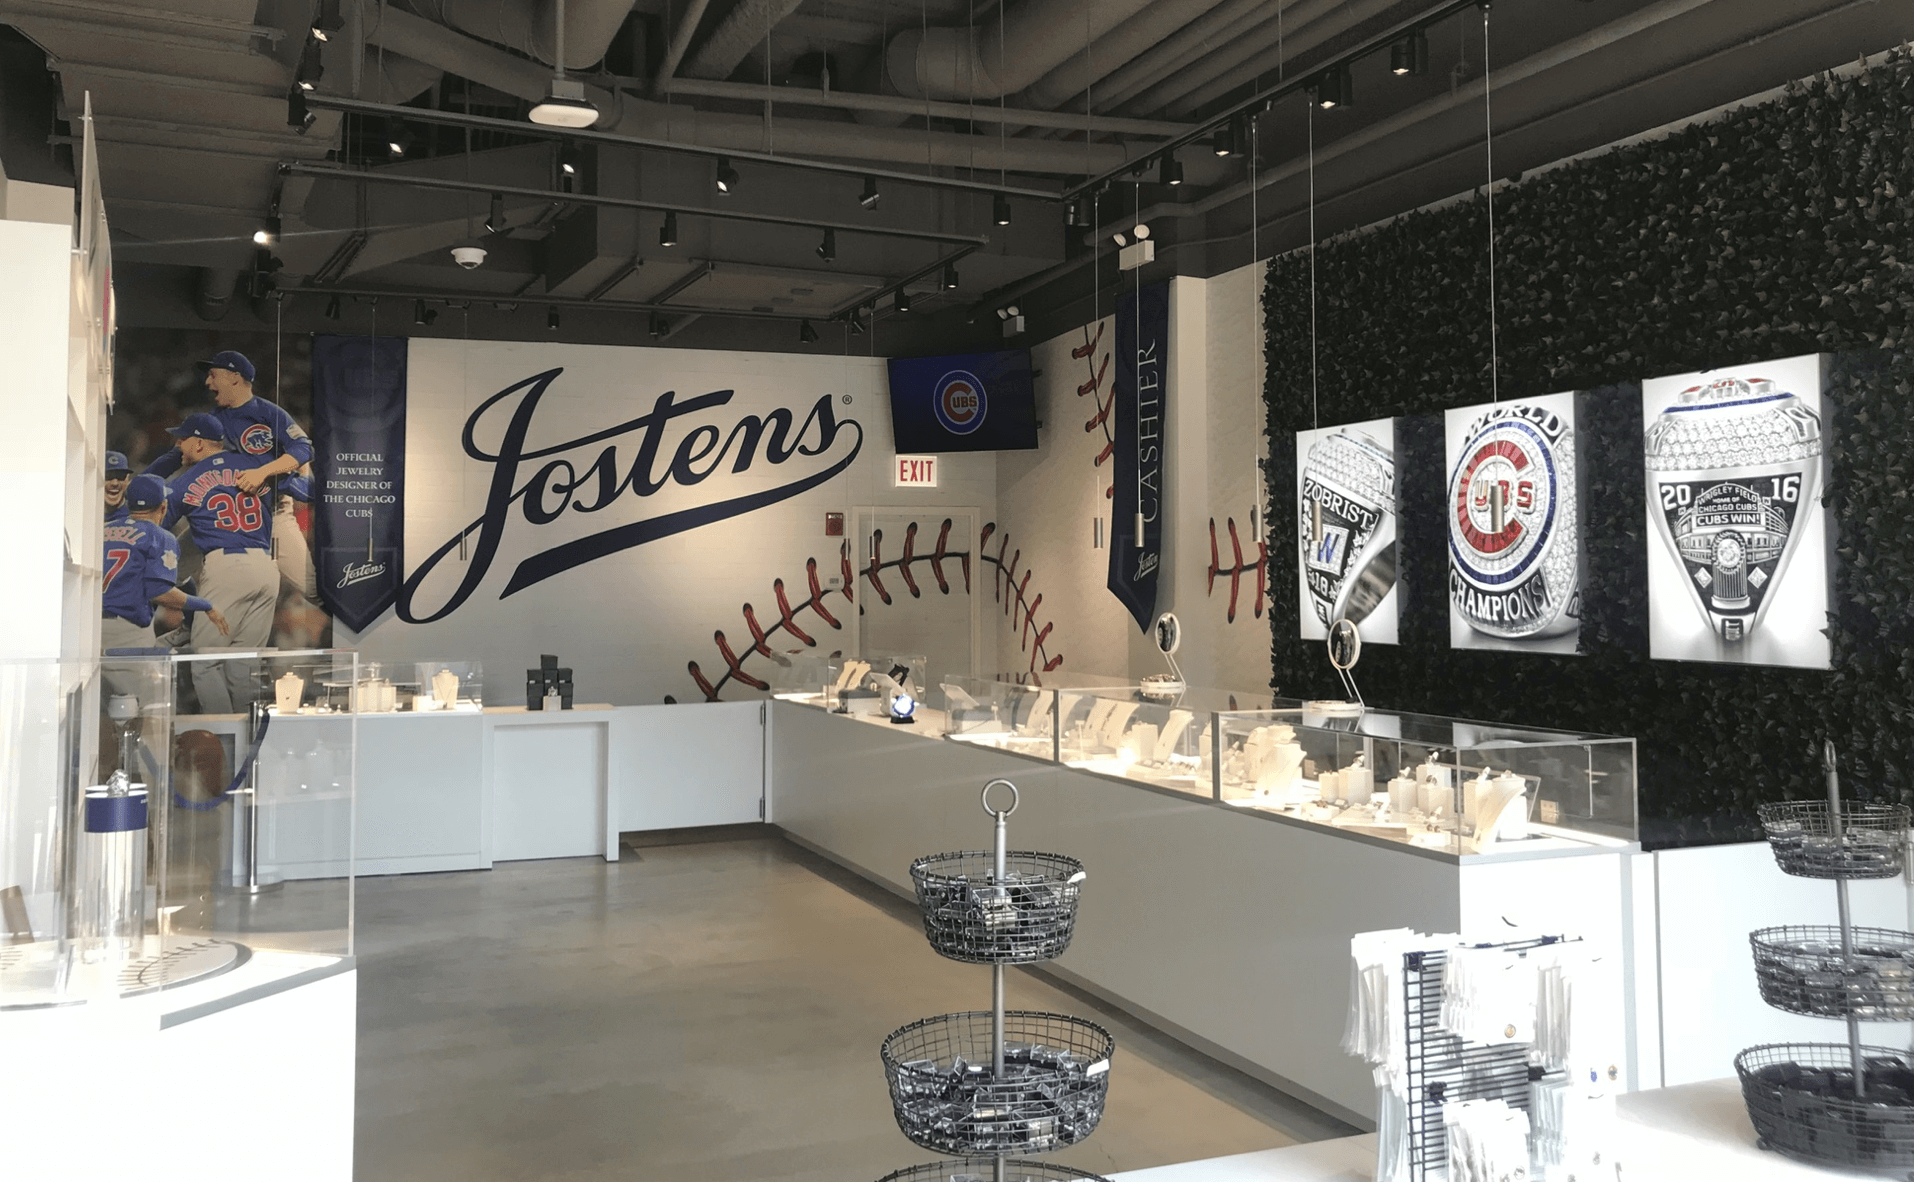 Josten's - Visit the Jostens Jewelry Store and take home a piece of Cubs history. The Josten's store at Gallagher Way features masterfully crafted collectibles that commemorate the Chicago Cubs' historic 2016 season.3641 N Clark StreetChicago, IL 60613877-244-2827